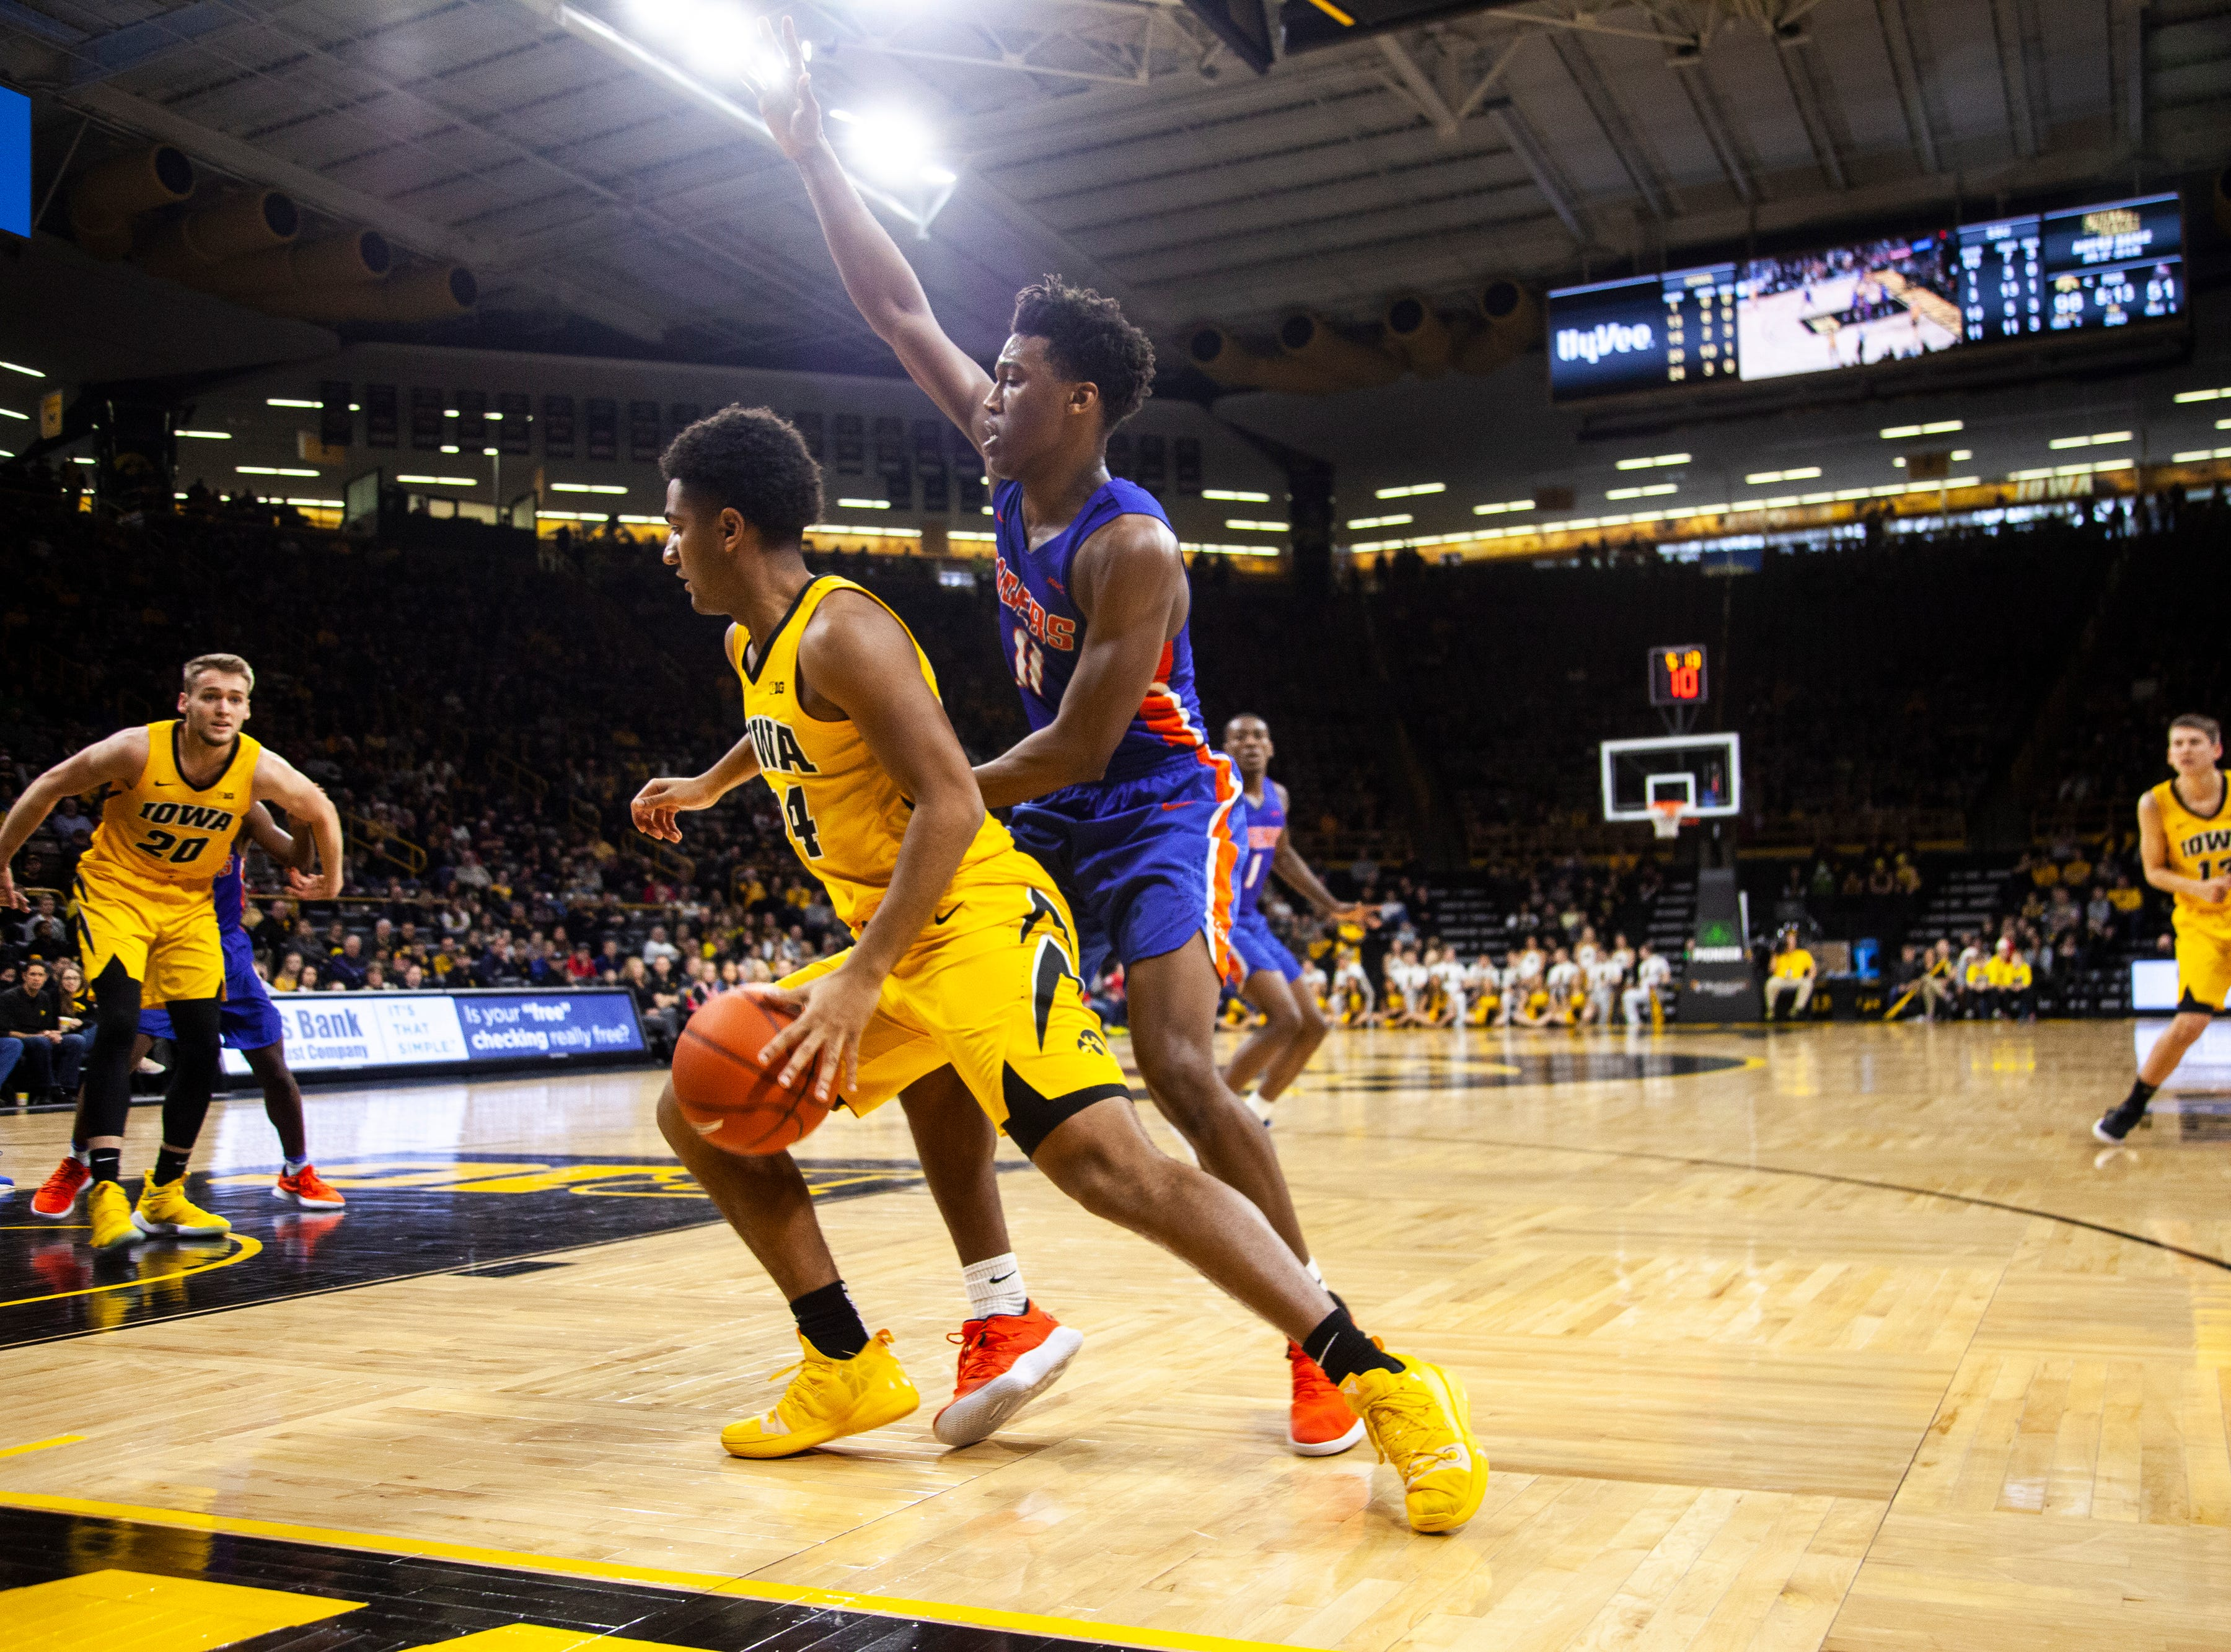 Iowa guard Nicolas Hobbs (24) gets defended by Savannah State guard Jaquan Dotson (11) during a NCAA men's basketball game on Saturday, Dec. 22, 2018, at Carver-Hawkeye Arena in Iowa City.